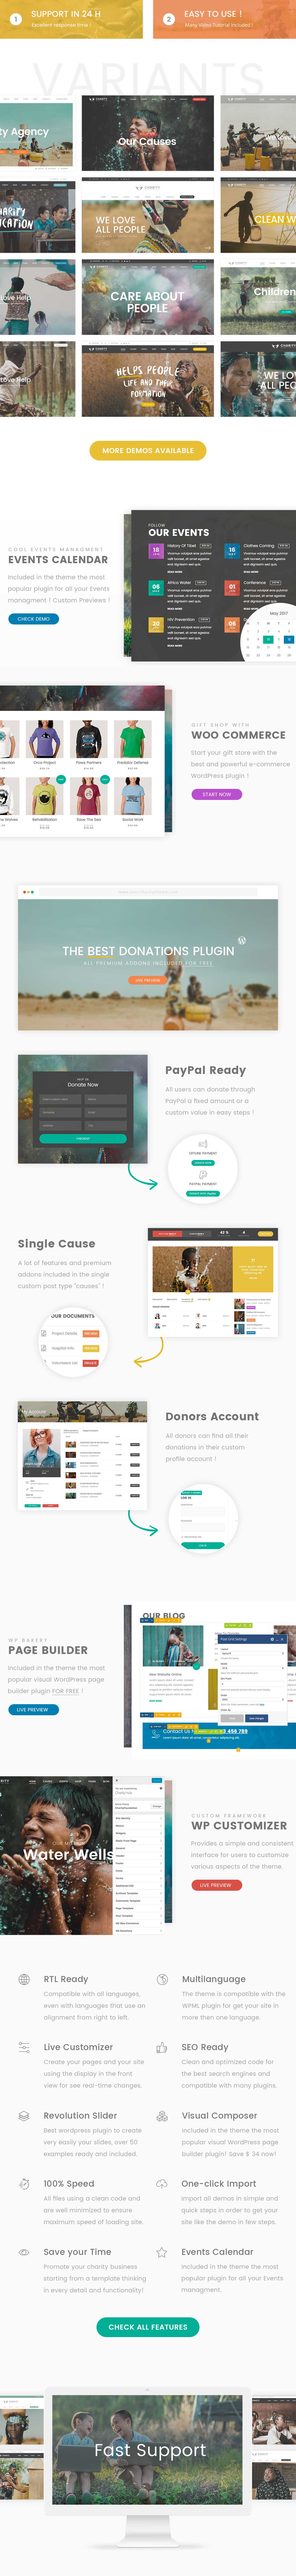 Charity Foundation - Charity Hub WP Theme - 1